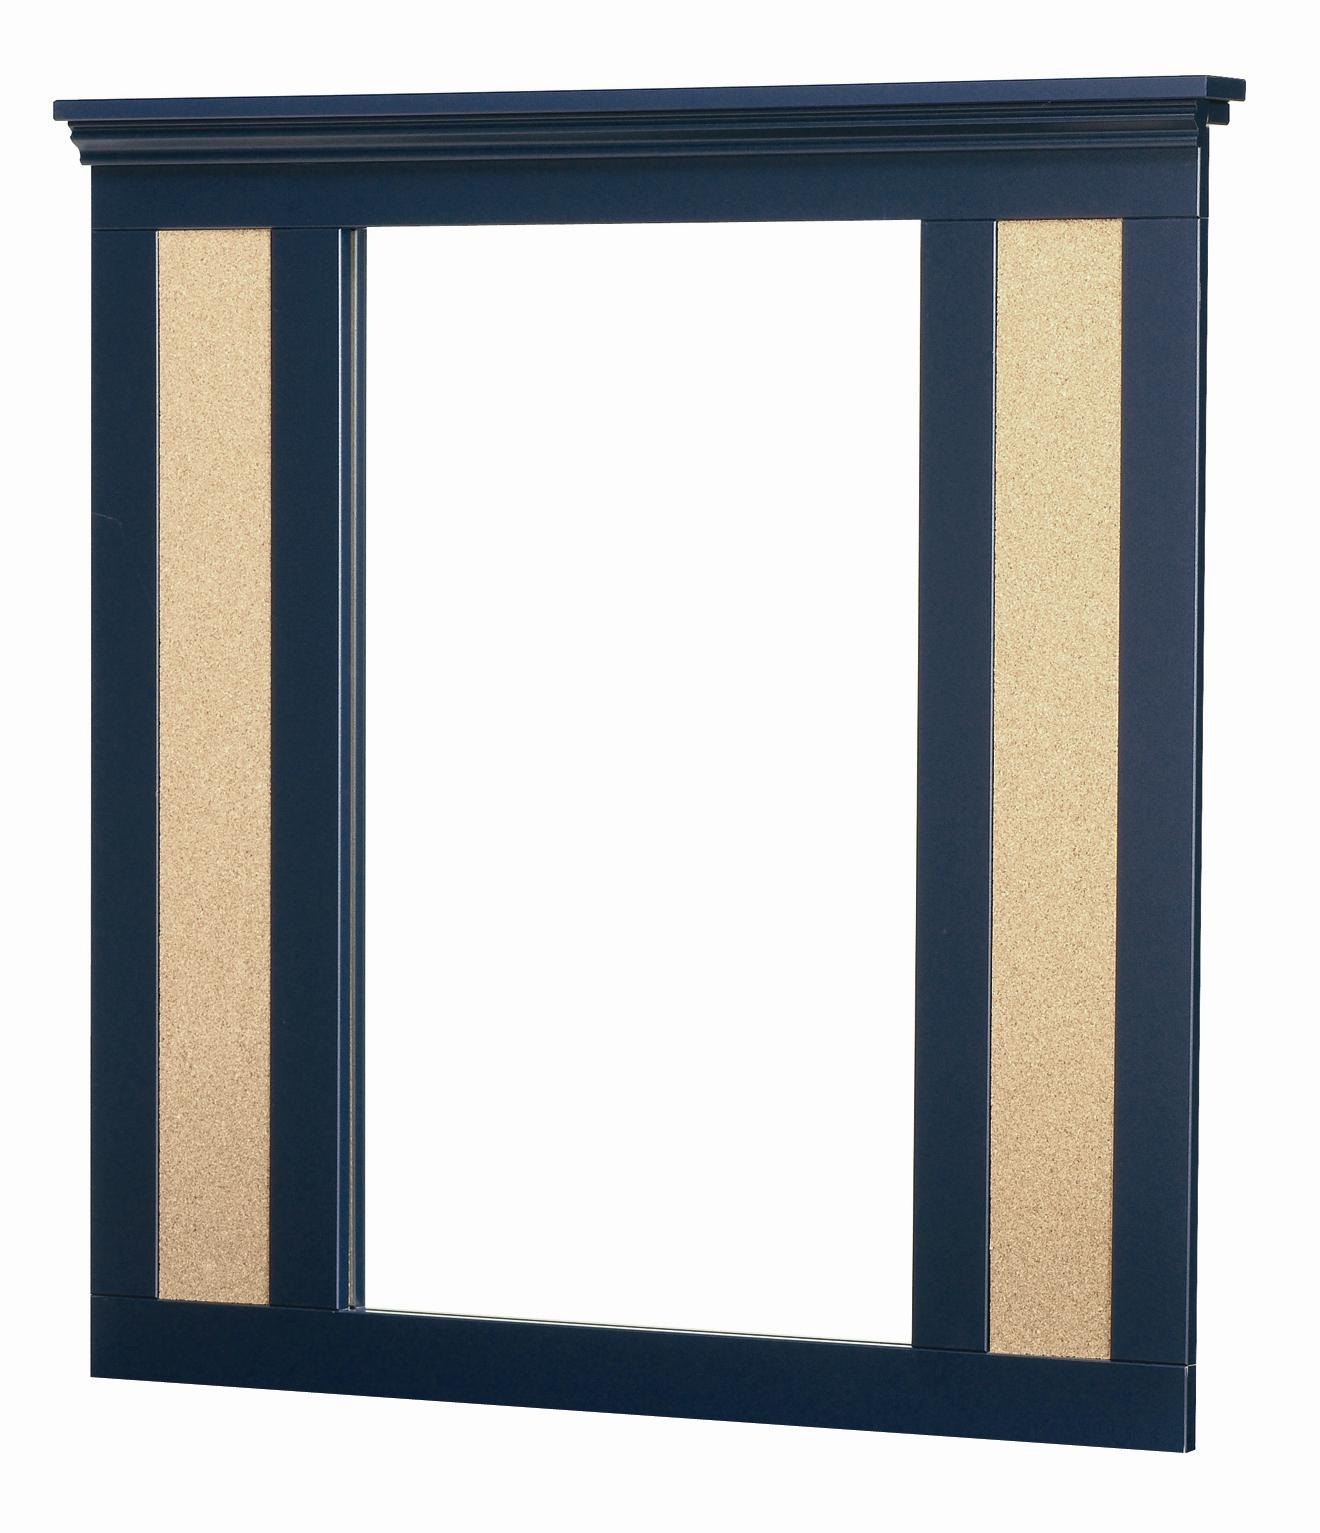 Lang Furniture Accessories Mirror With Cork/Panels